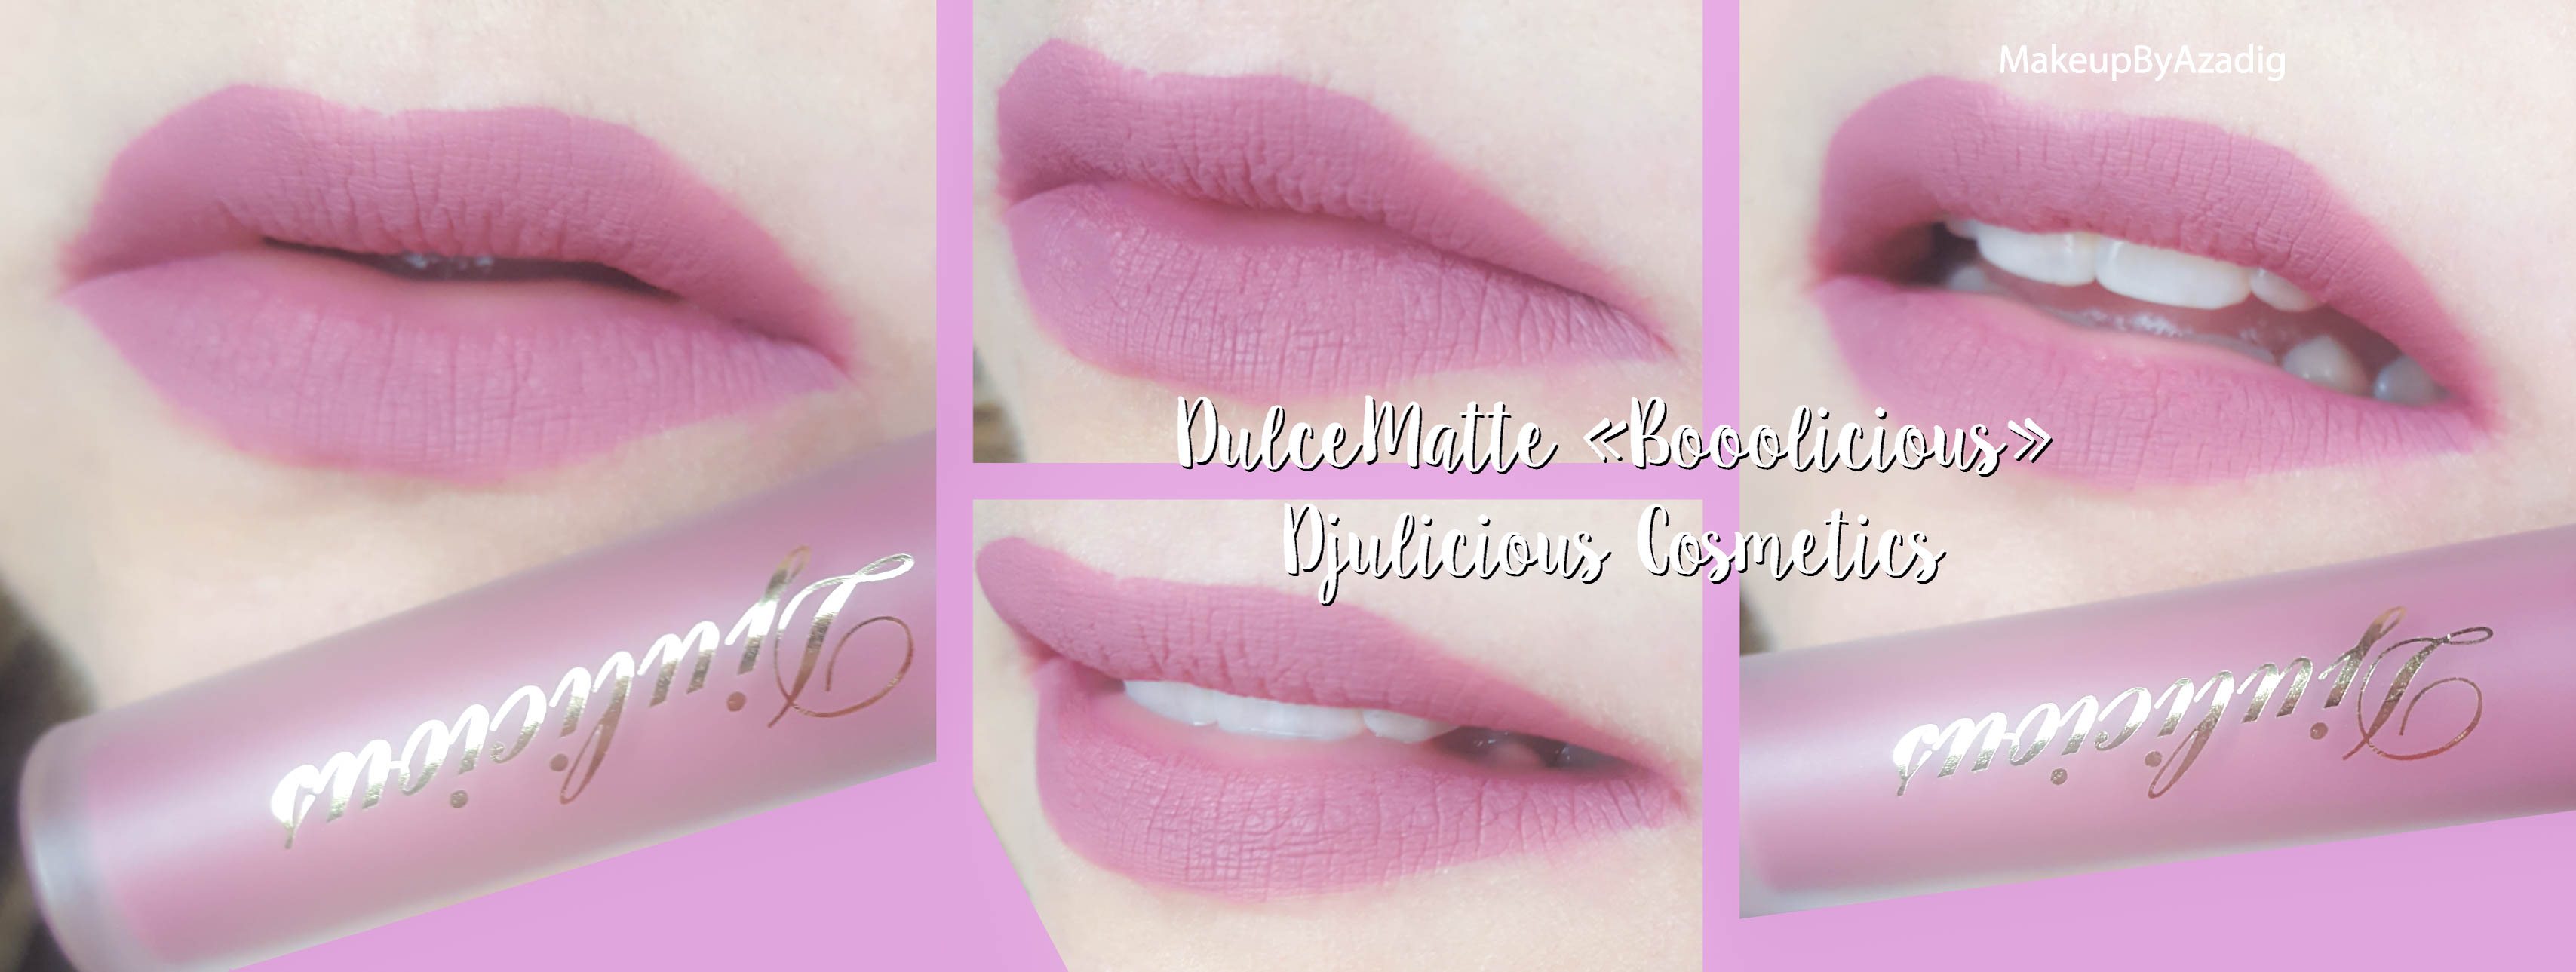 makeupbyazadig-swatches-djulicious-cosmetics-sananas-peekabooo-knoetzie-natacha-birds-julie-world-of-beauty-booolicious-sanoulicious-paris-troyes-dijon-dulcematte-revue-blog